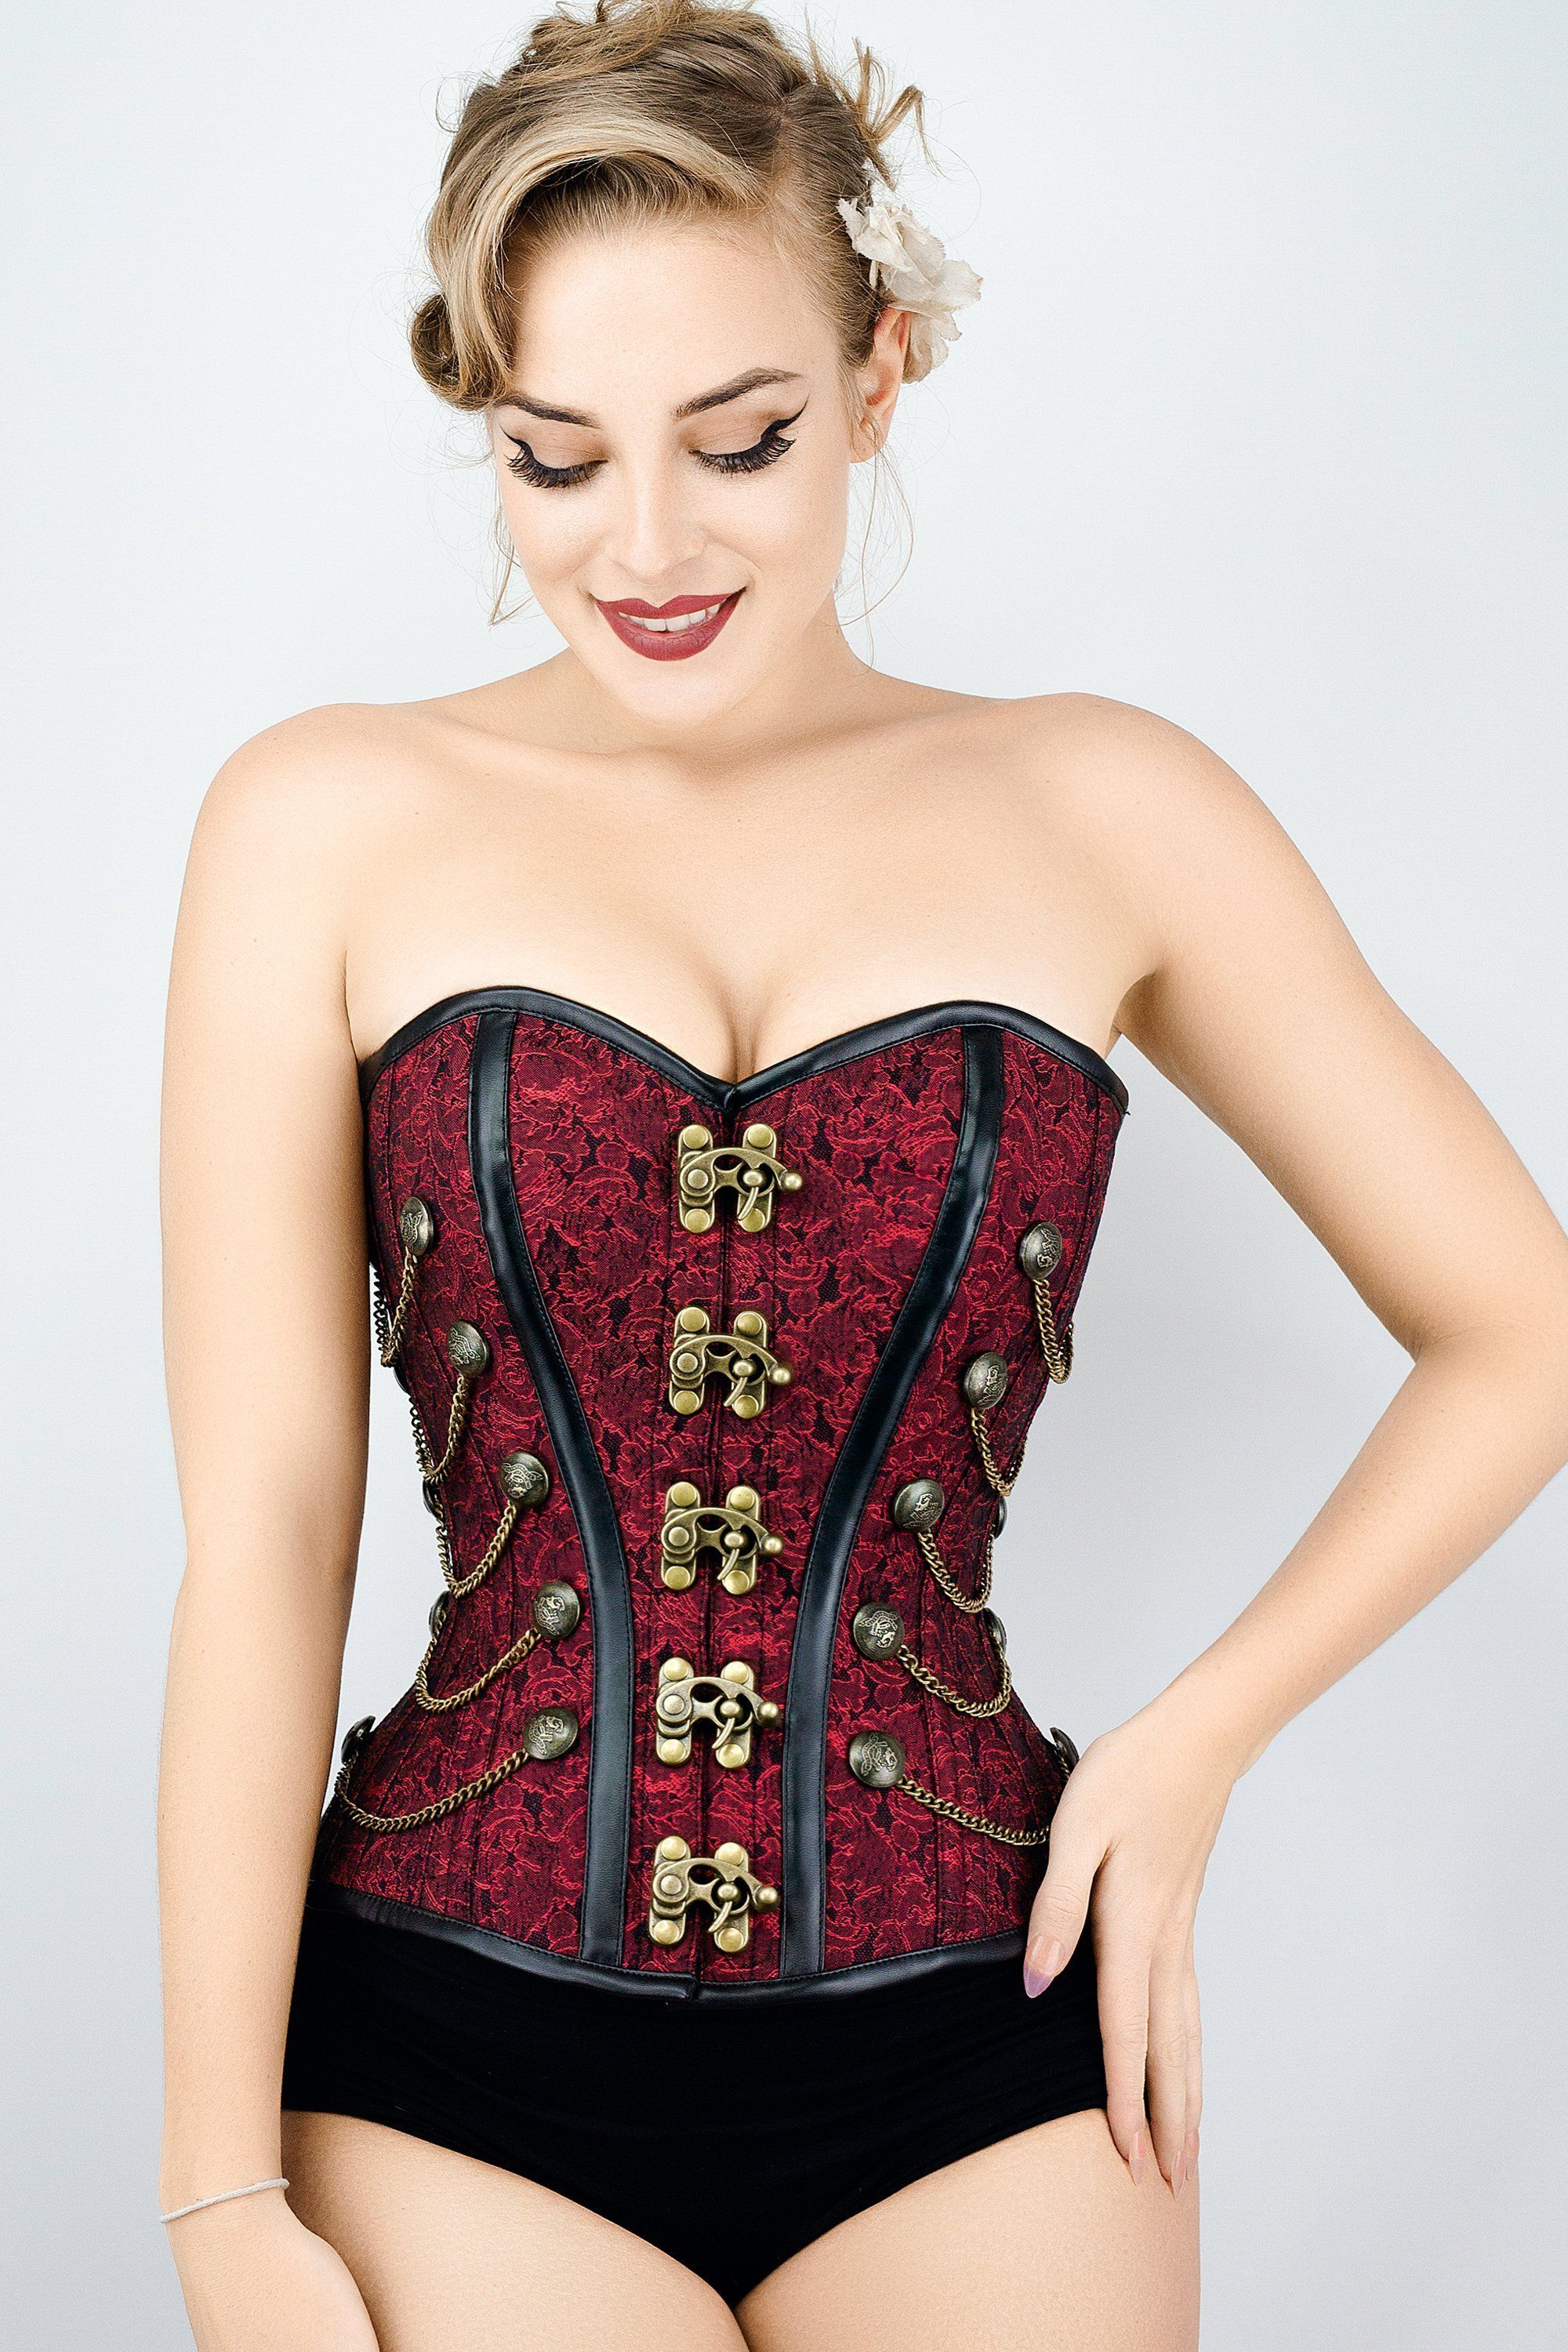 445c89d2dd6 Red Steampunk Corset With Chains - 20 in 2019